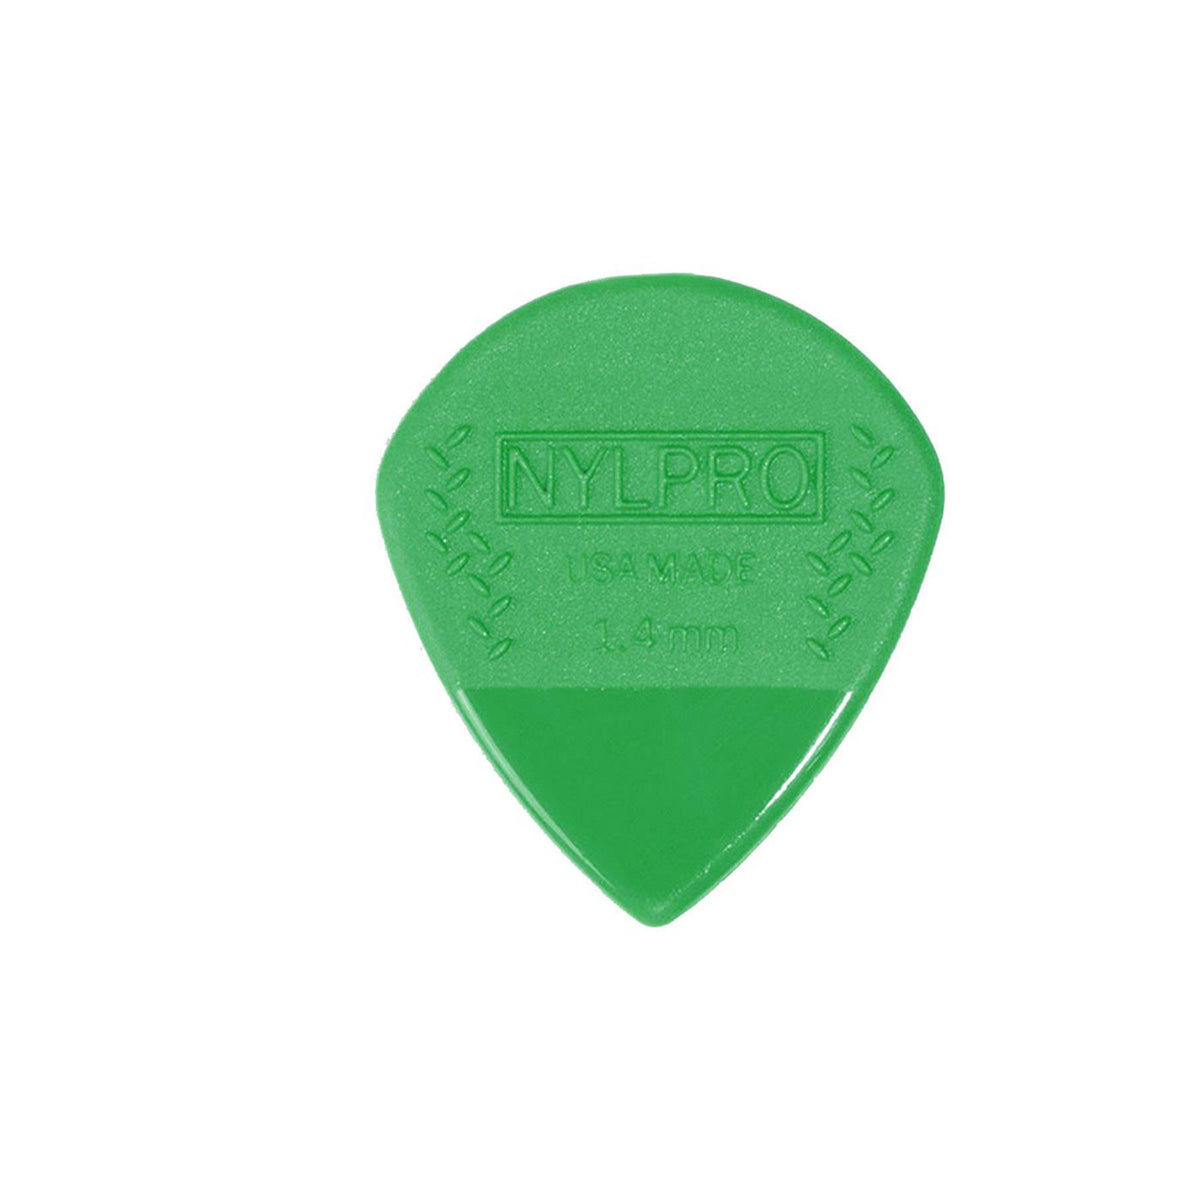 IN STORE -- D'Addario Planet Waves 3NPP7 Nylpro Plus Guitar Pick - Individual